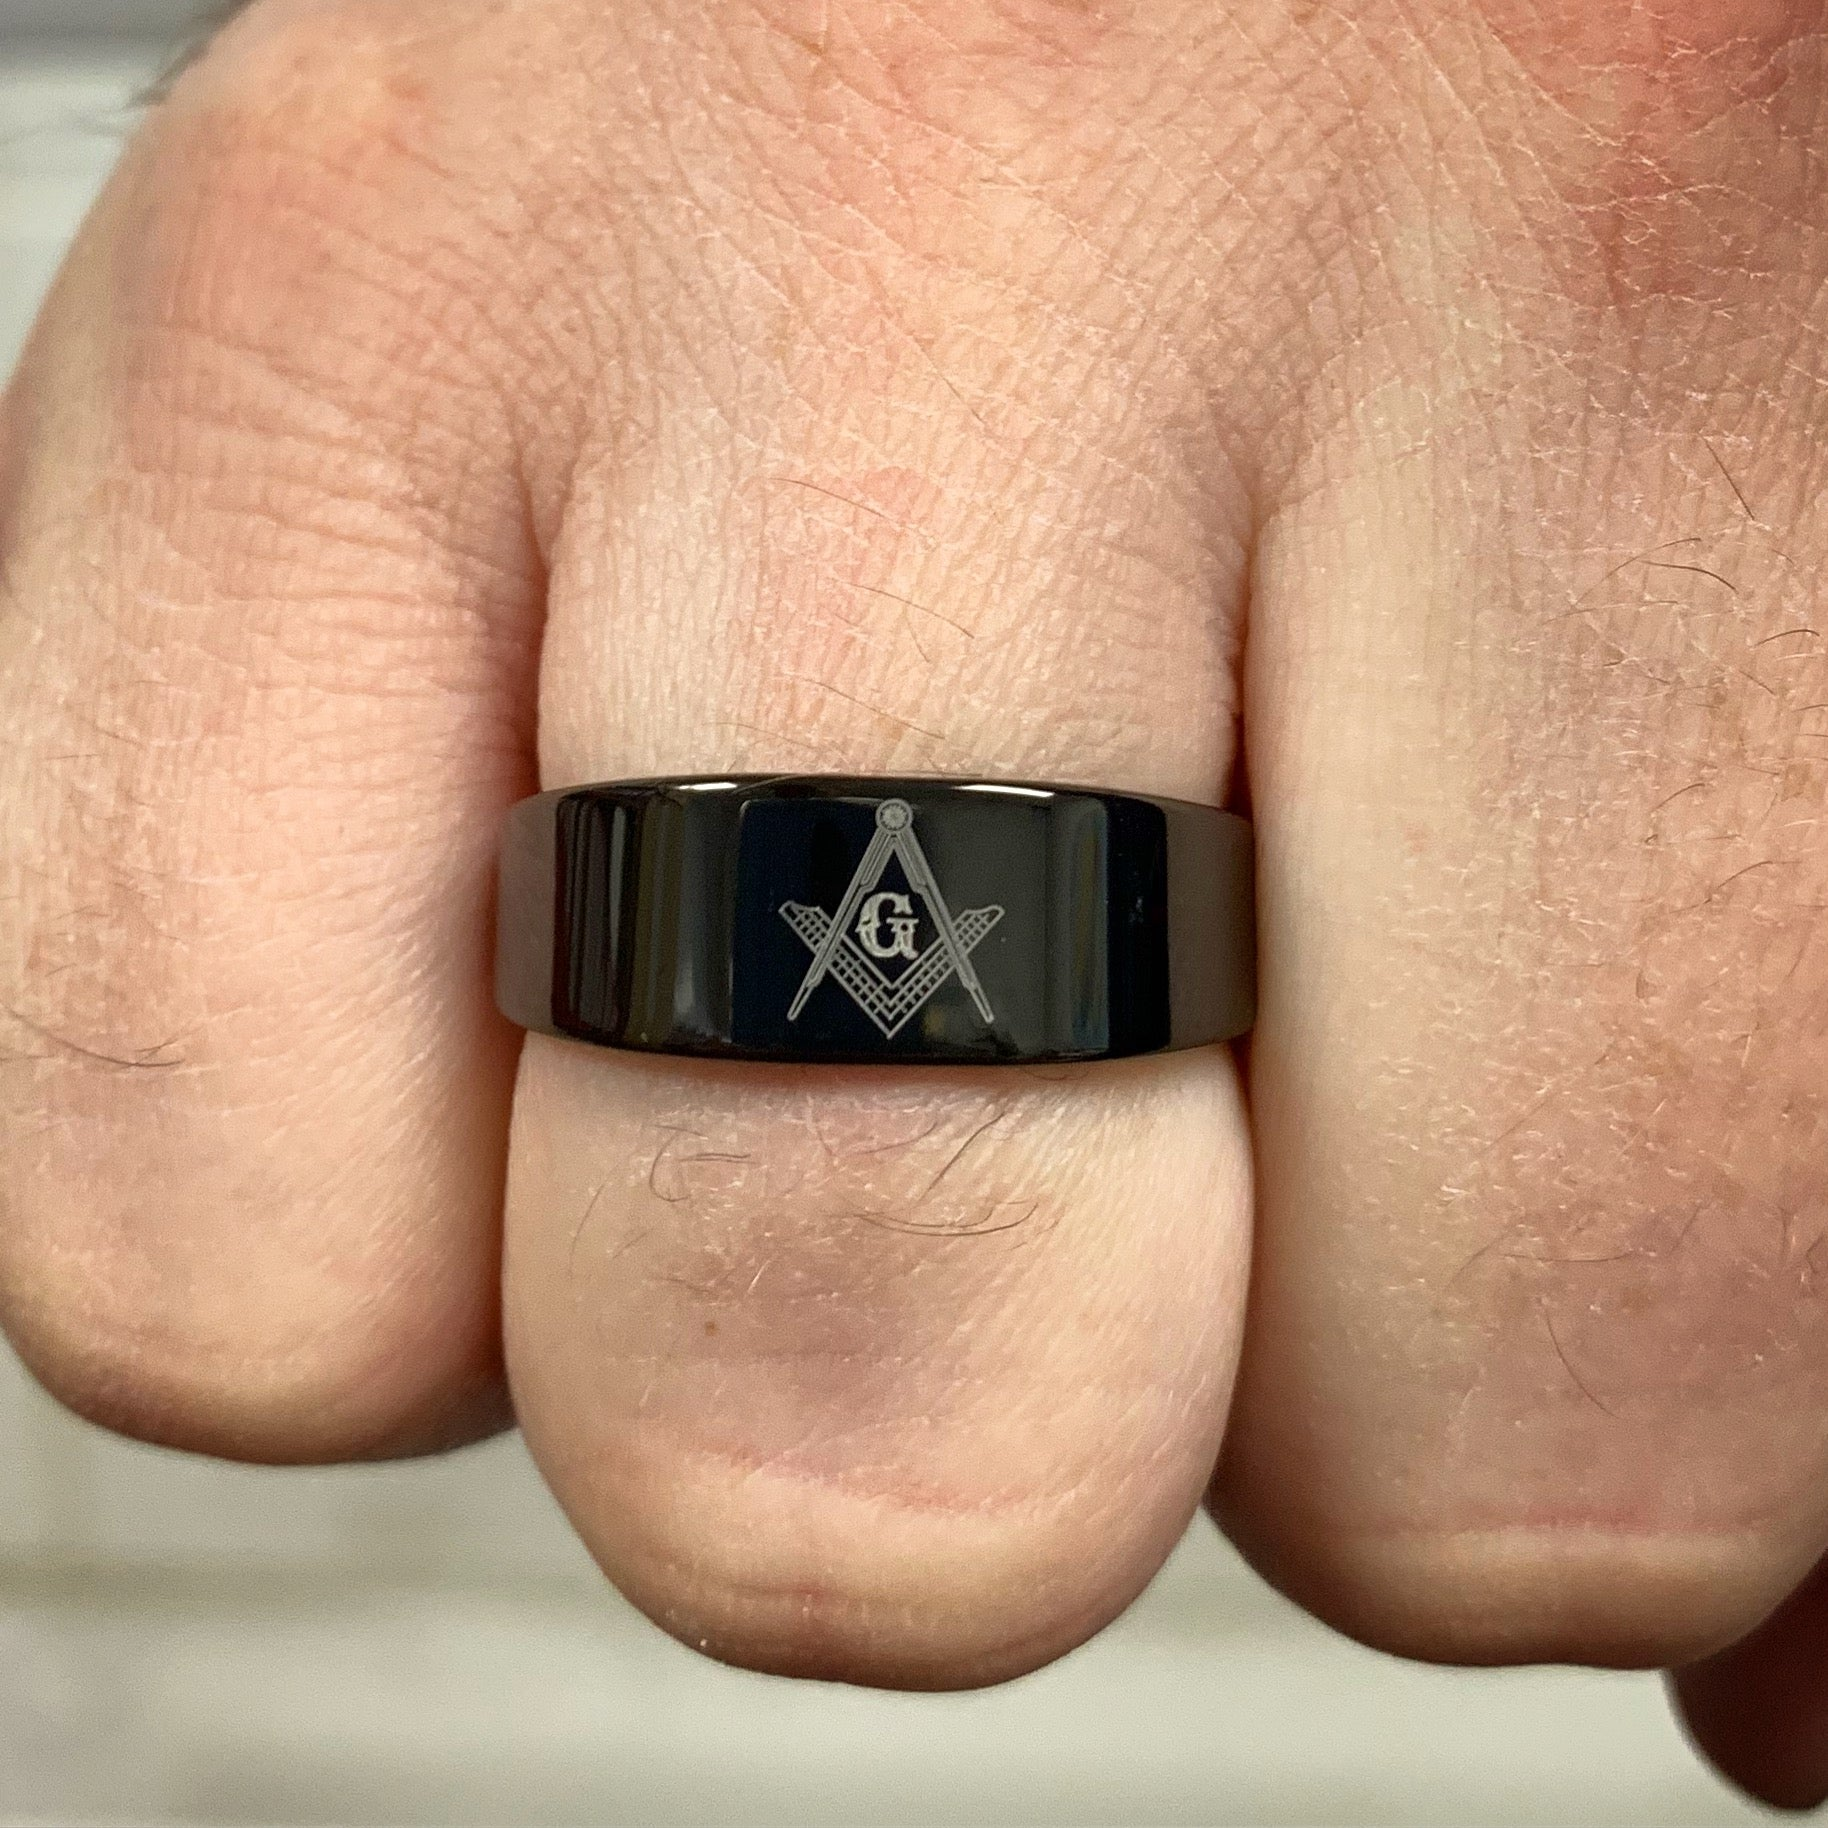 Black Tungsten Ring Engraved with Square and Compass